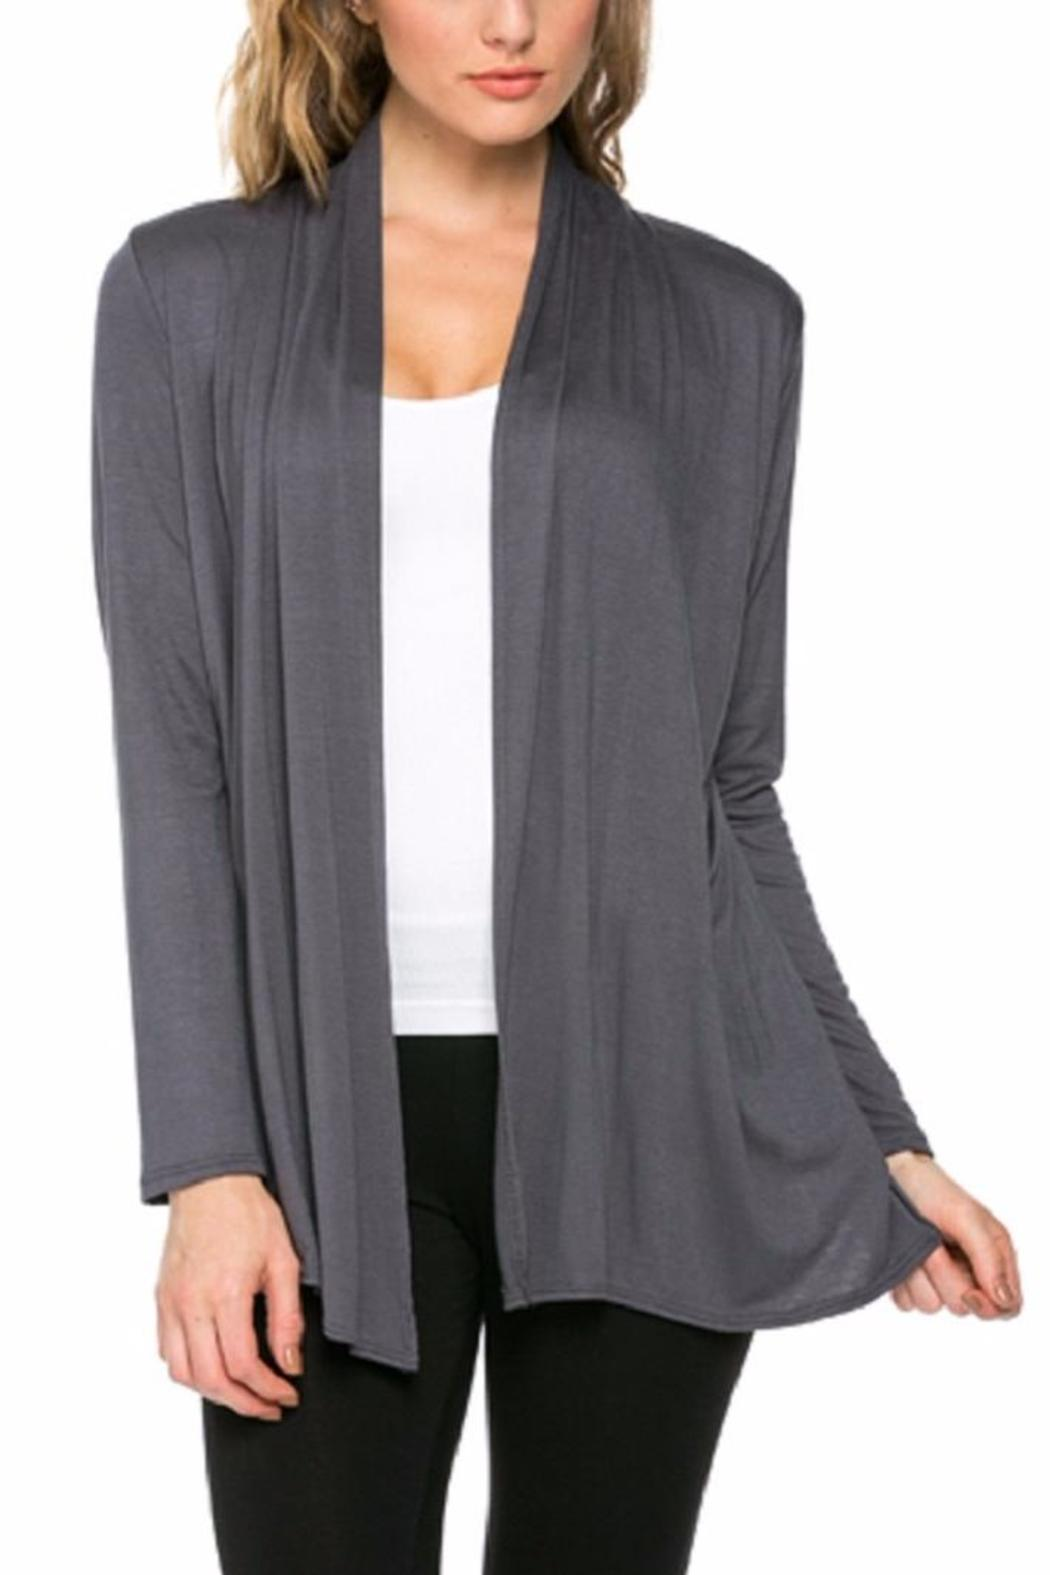 Azules Open Cardigan from California by Casual Island — Shoptiques